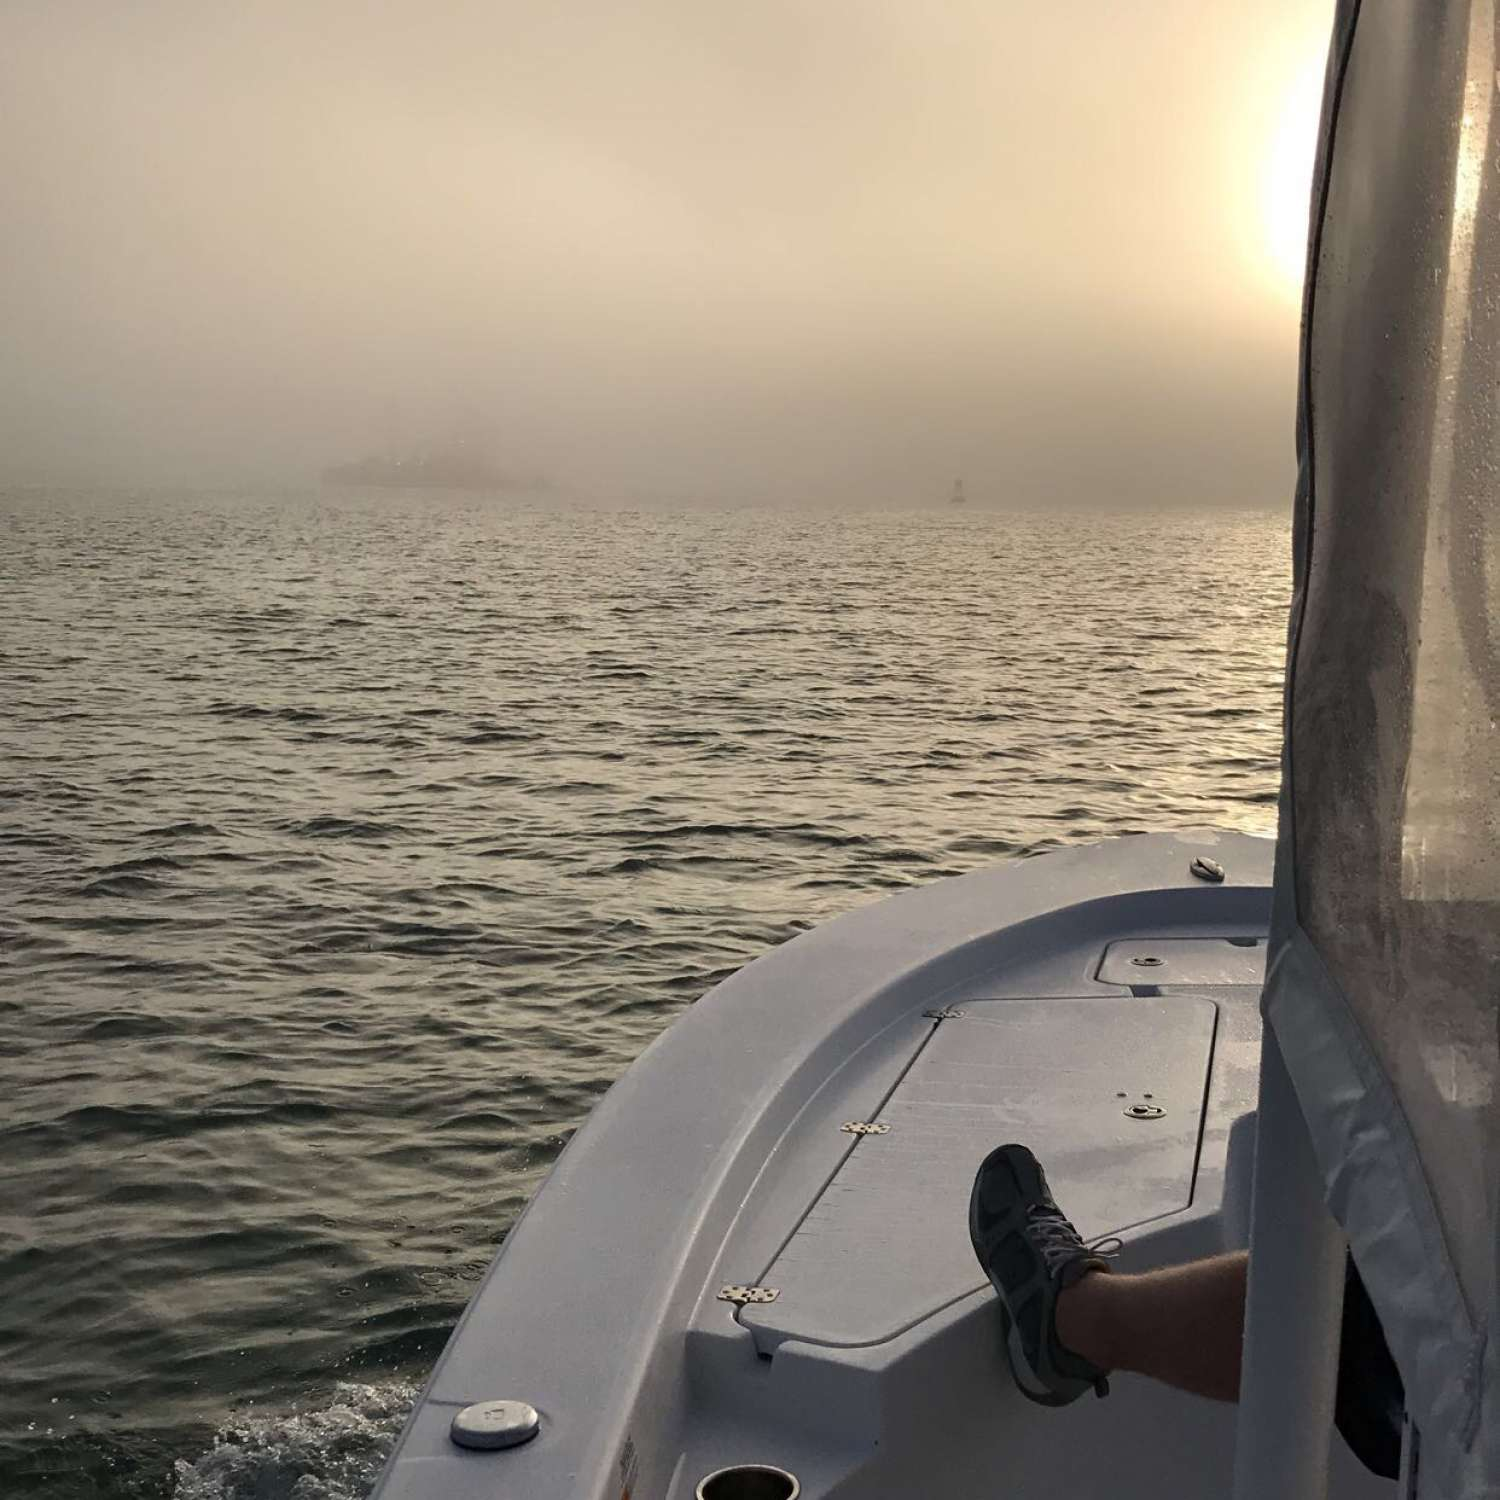 Title: Foggy Morning - On board their Sportsman Masters 247 Bay Boat - Location: Geneva, Florida. Participating in the Photo Contest #SportsmanAugust2017